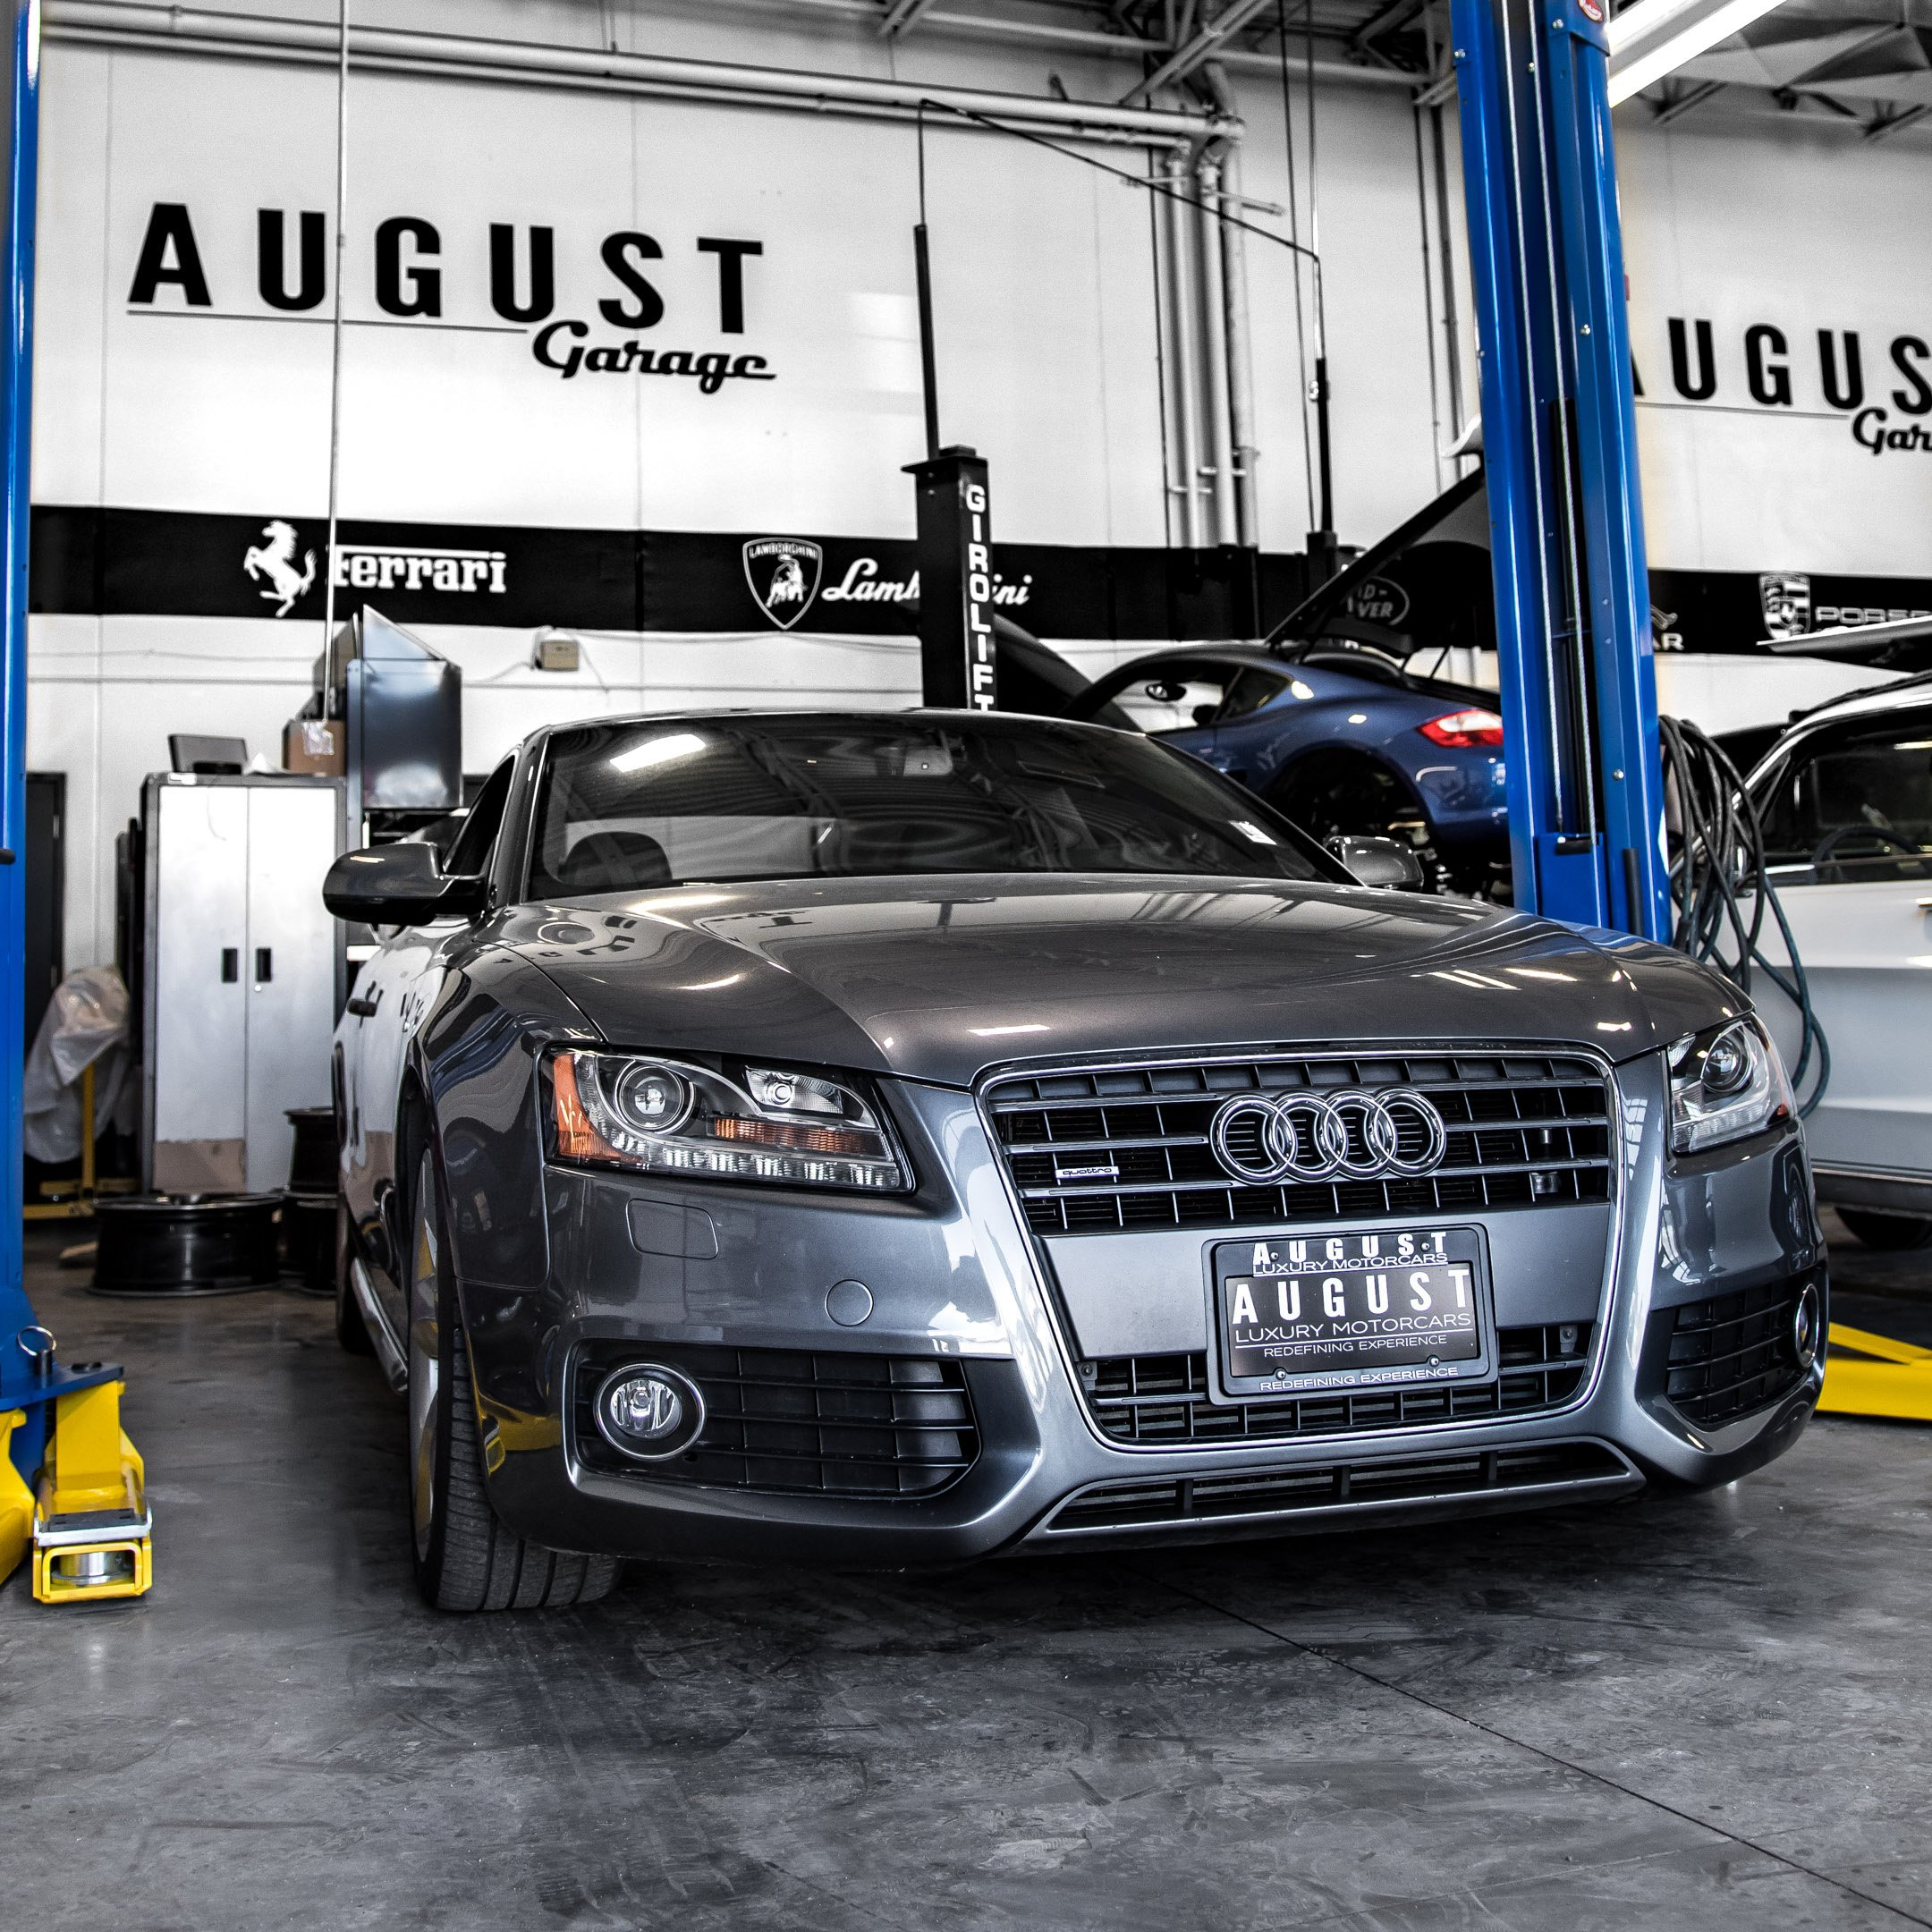 Bringing Your Vehicle to August Garage instead of OEM Dealer Service Department in Kelowna BC